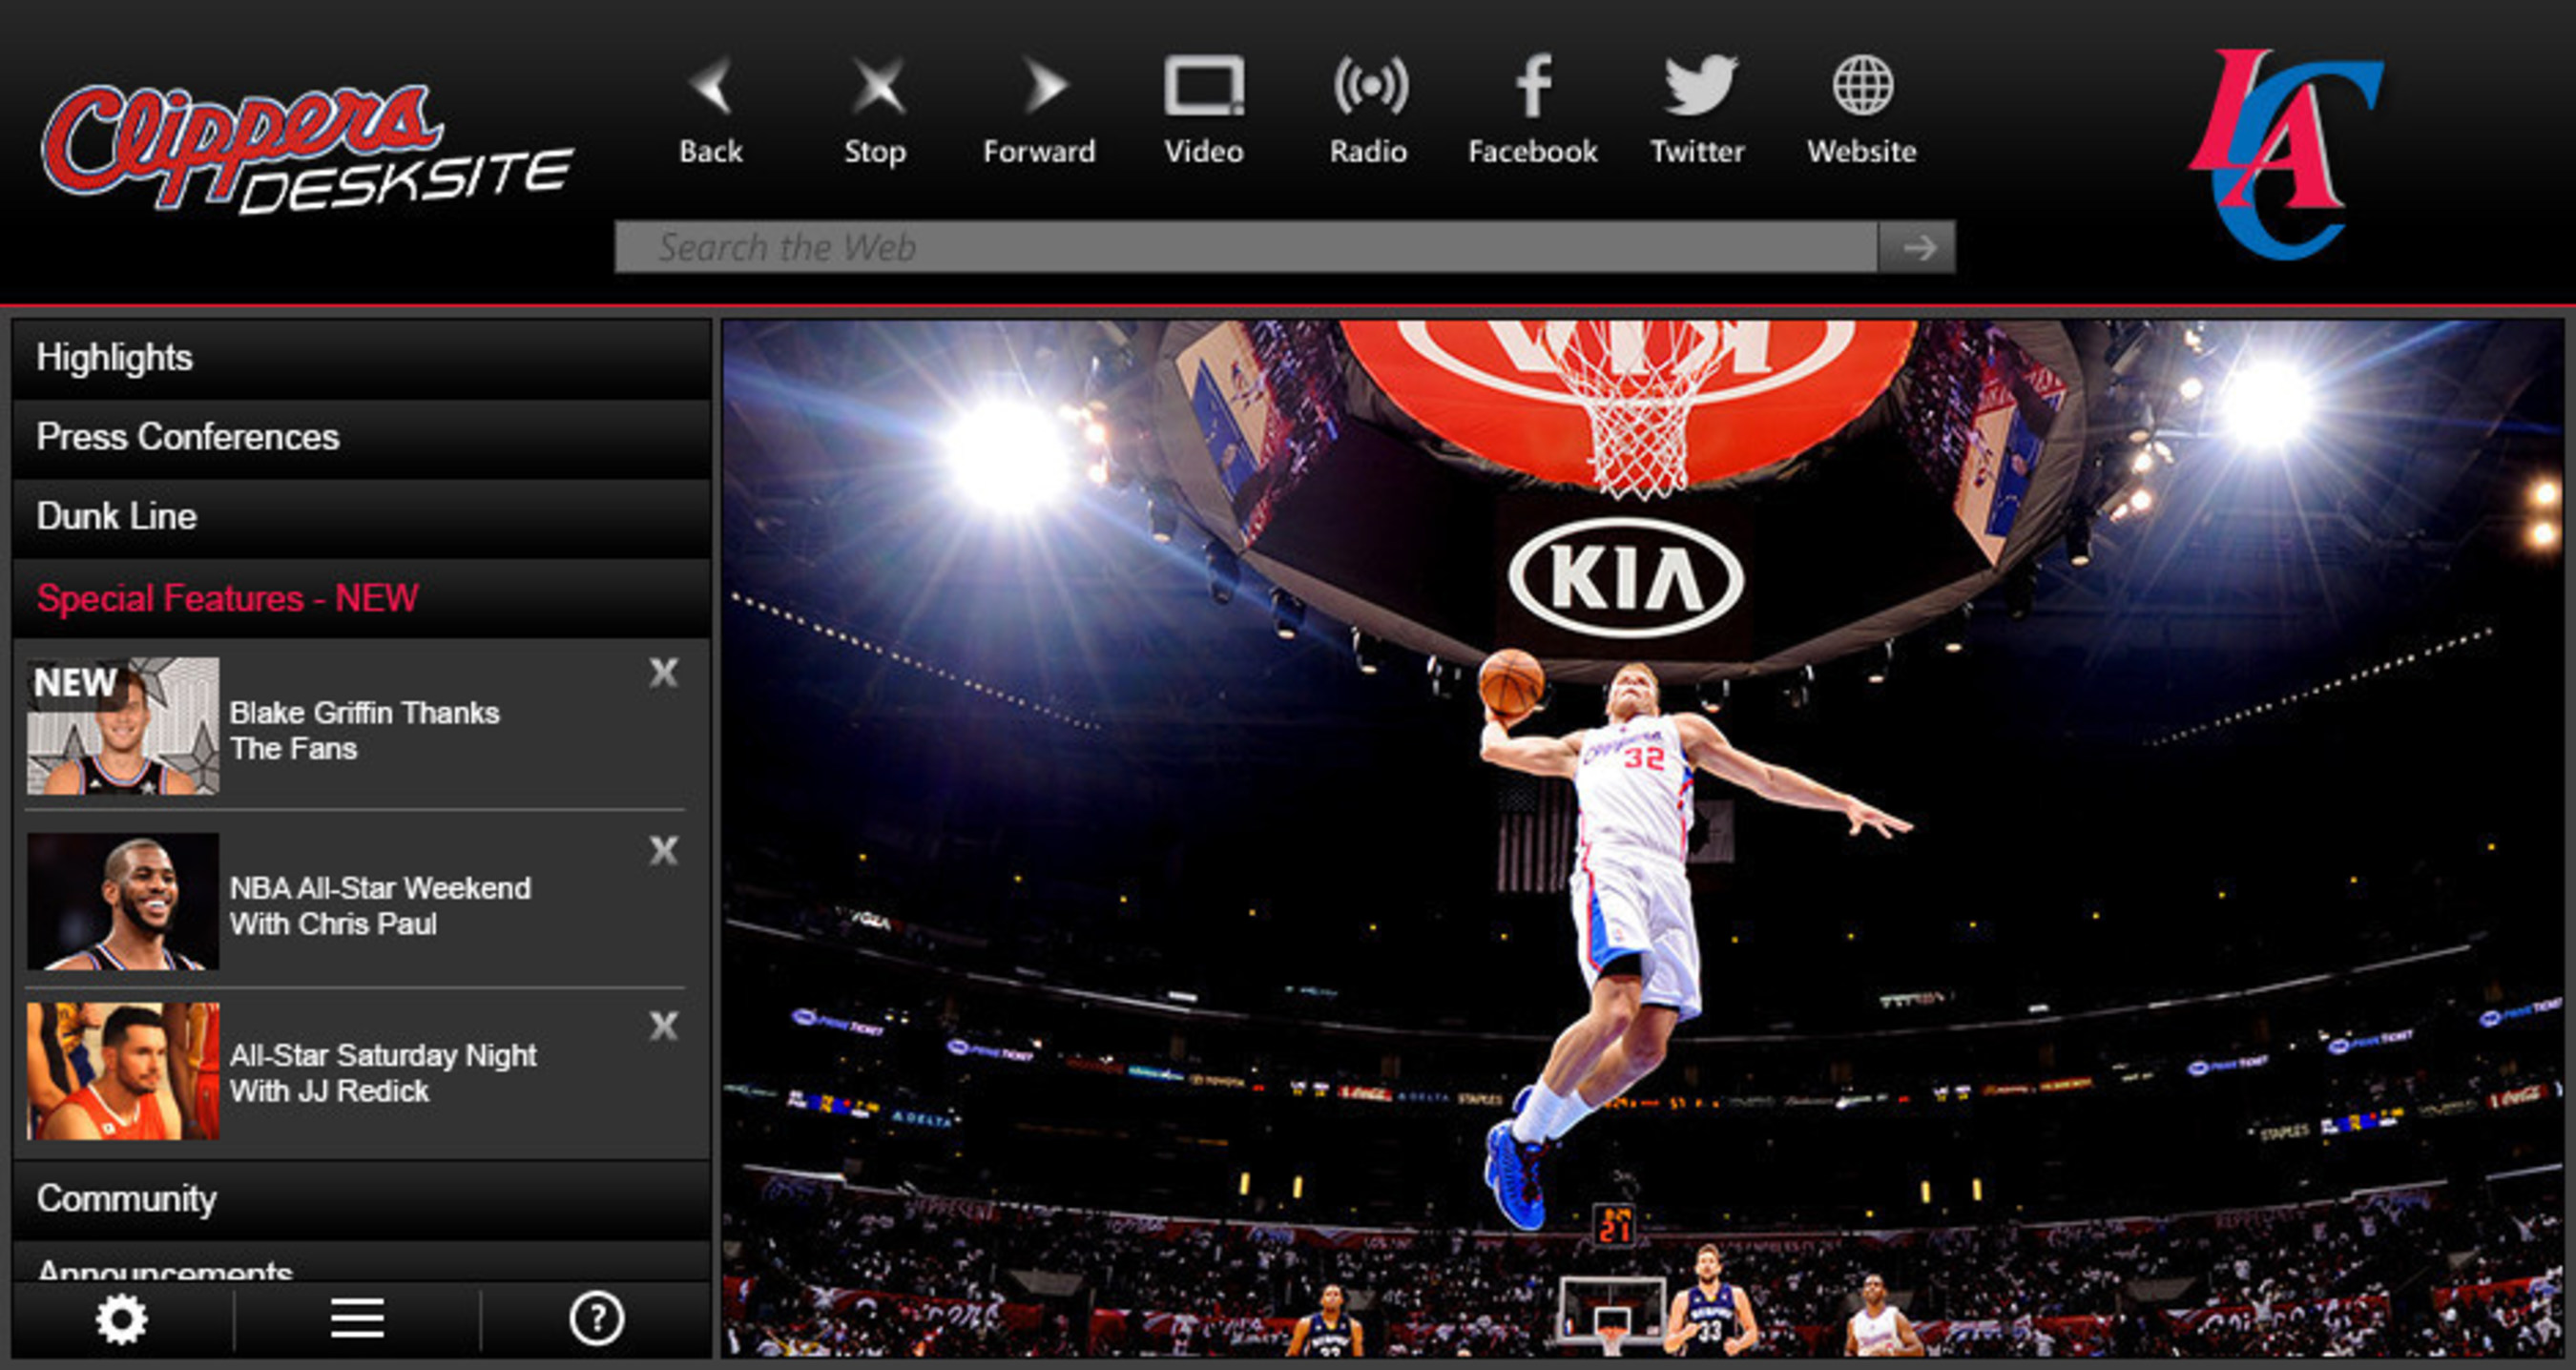 Los Angeles Clippers Launch New Video App With DeskSite